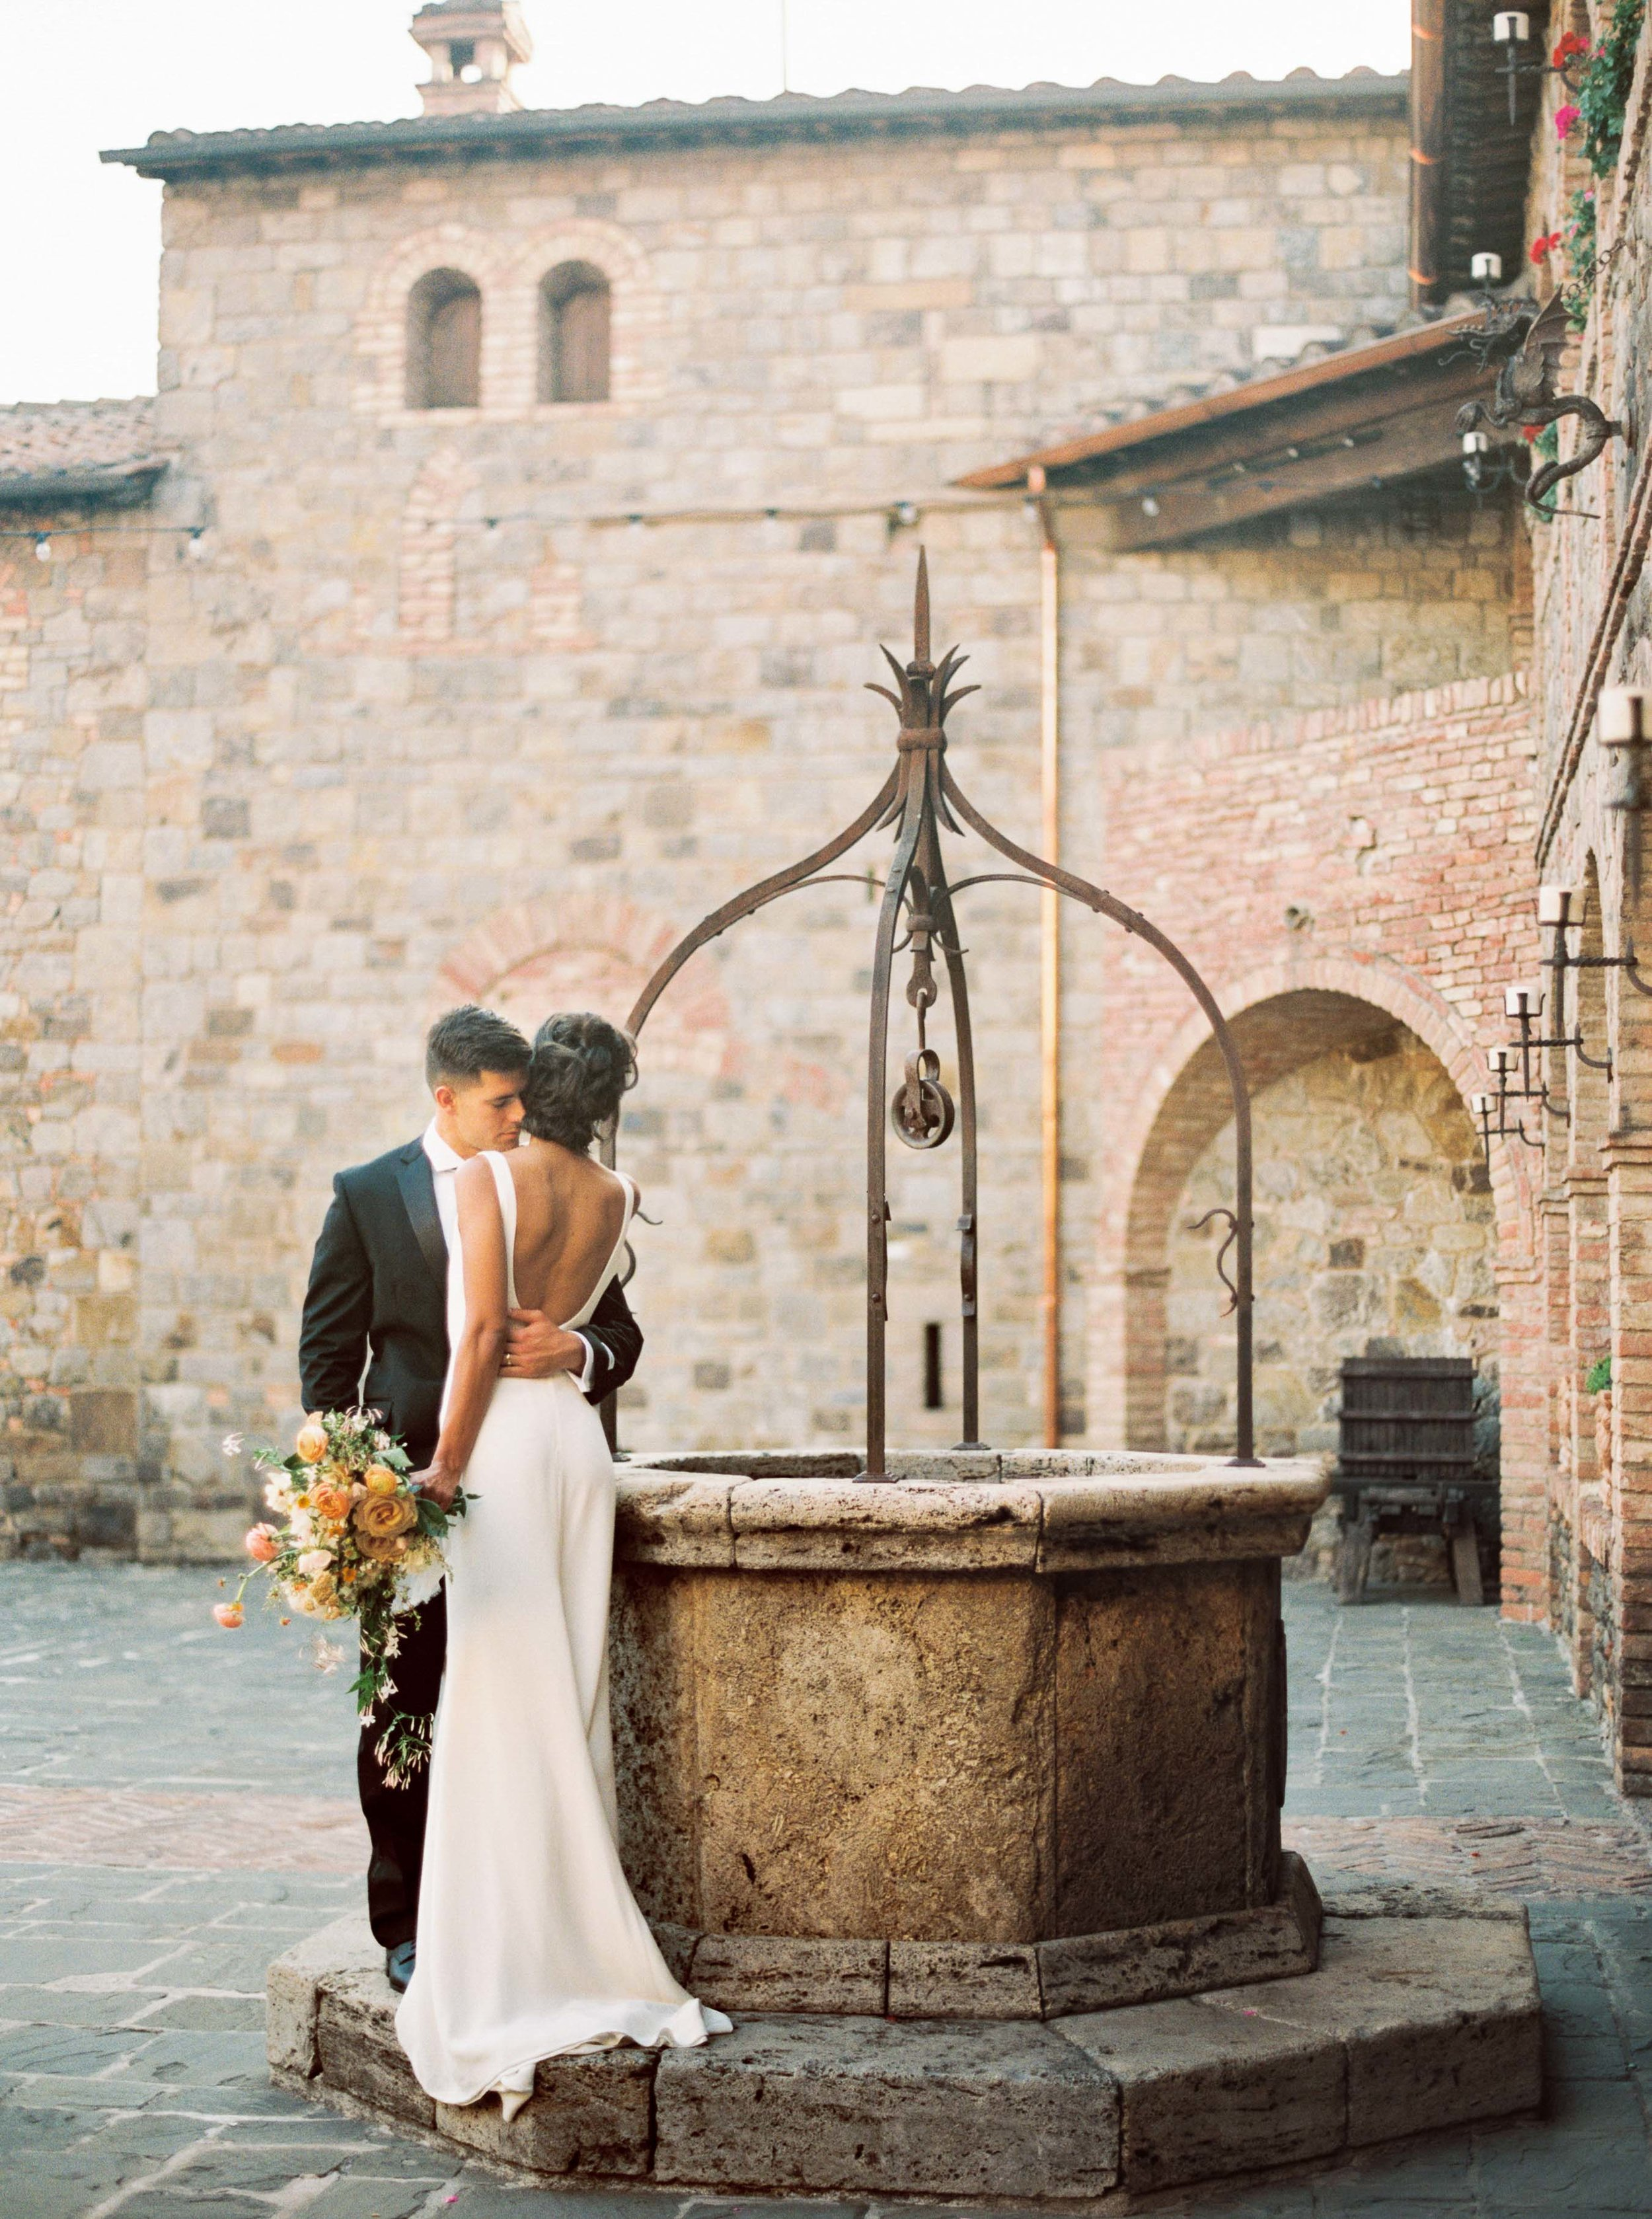 023napa_wedding_photographer_and_videographer_destination_and_elopement_photography.jpg